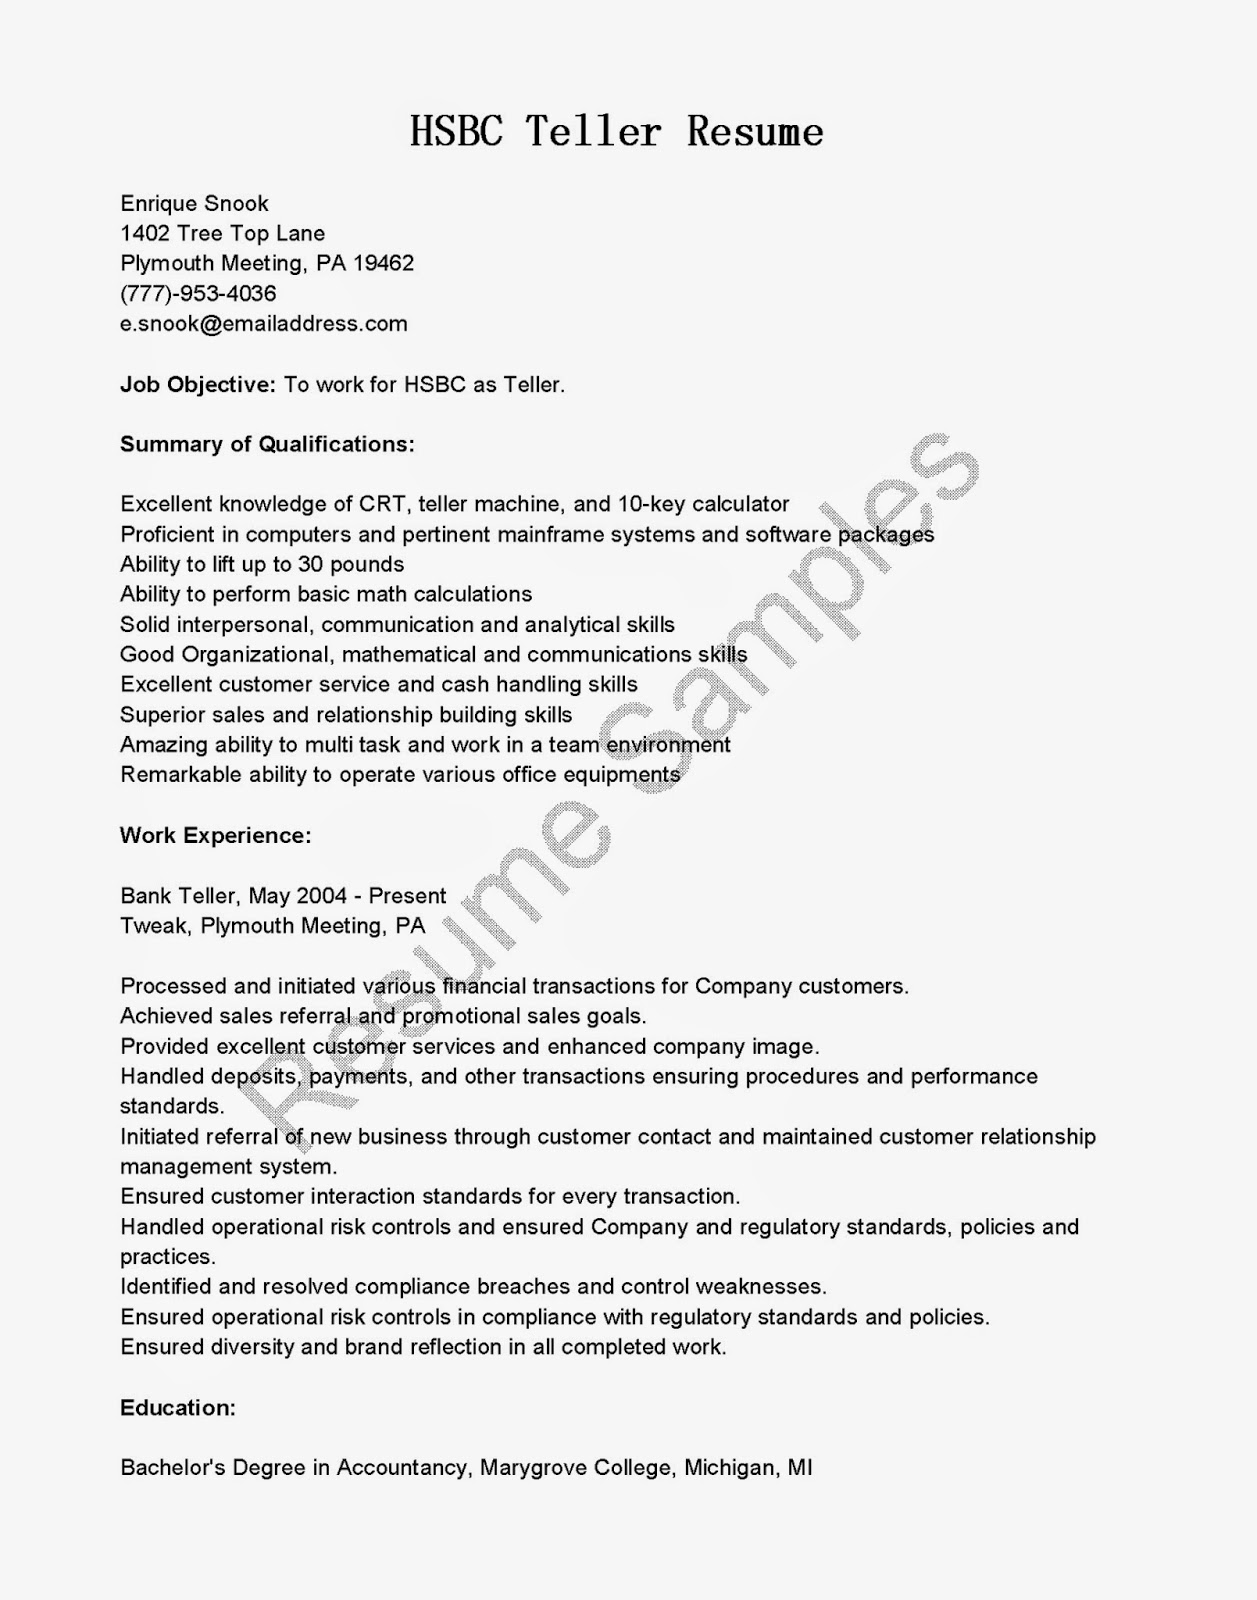 cover letter for a bank teller with no experience - cover letter bank teller australia